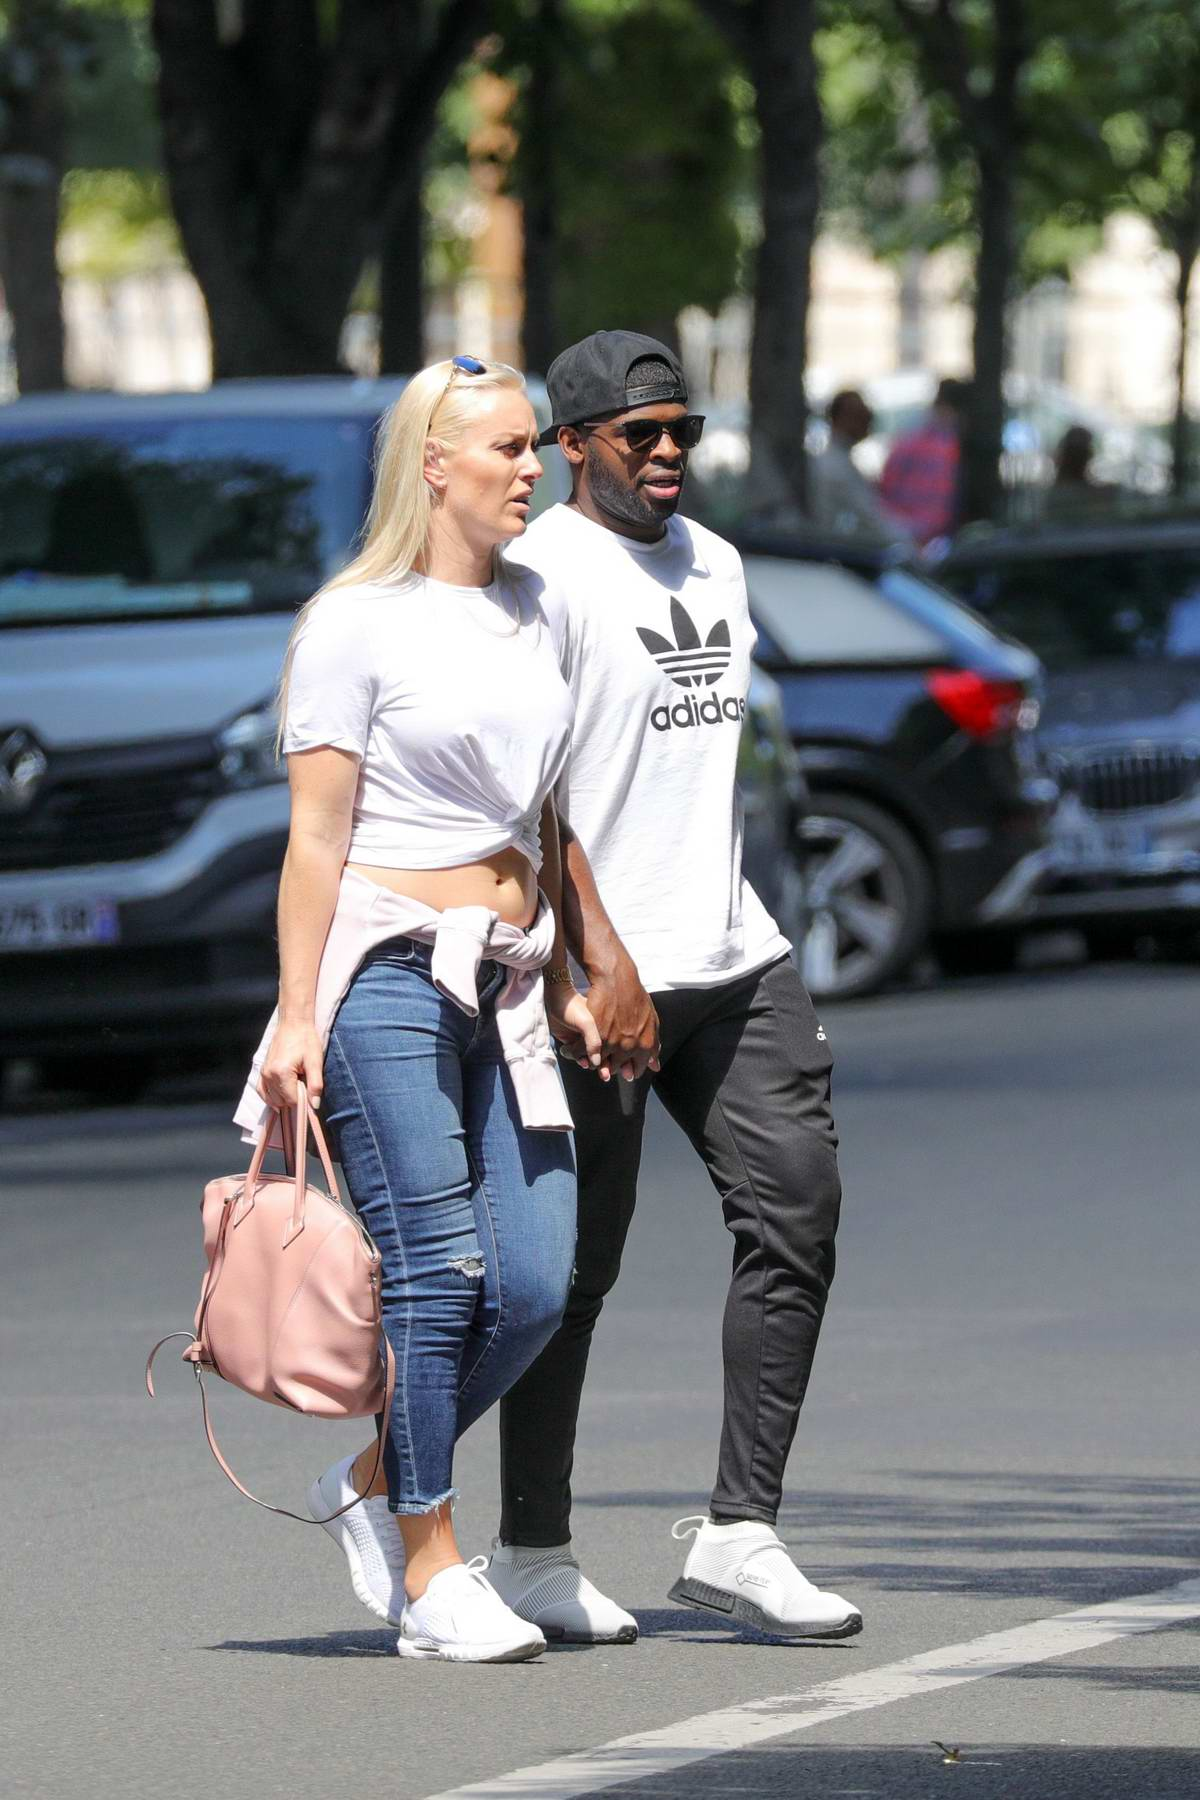 Lindsey Vonn Holds Hands With Her New Boyfriend Pernell Karl Subban While Out For Shopping In